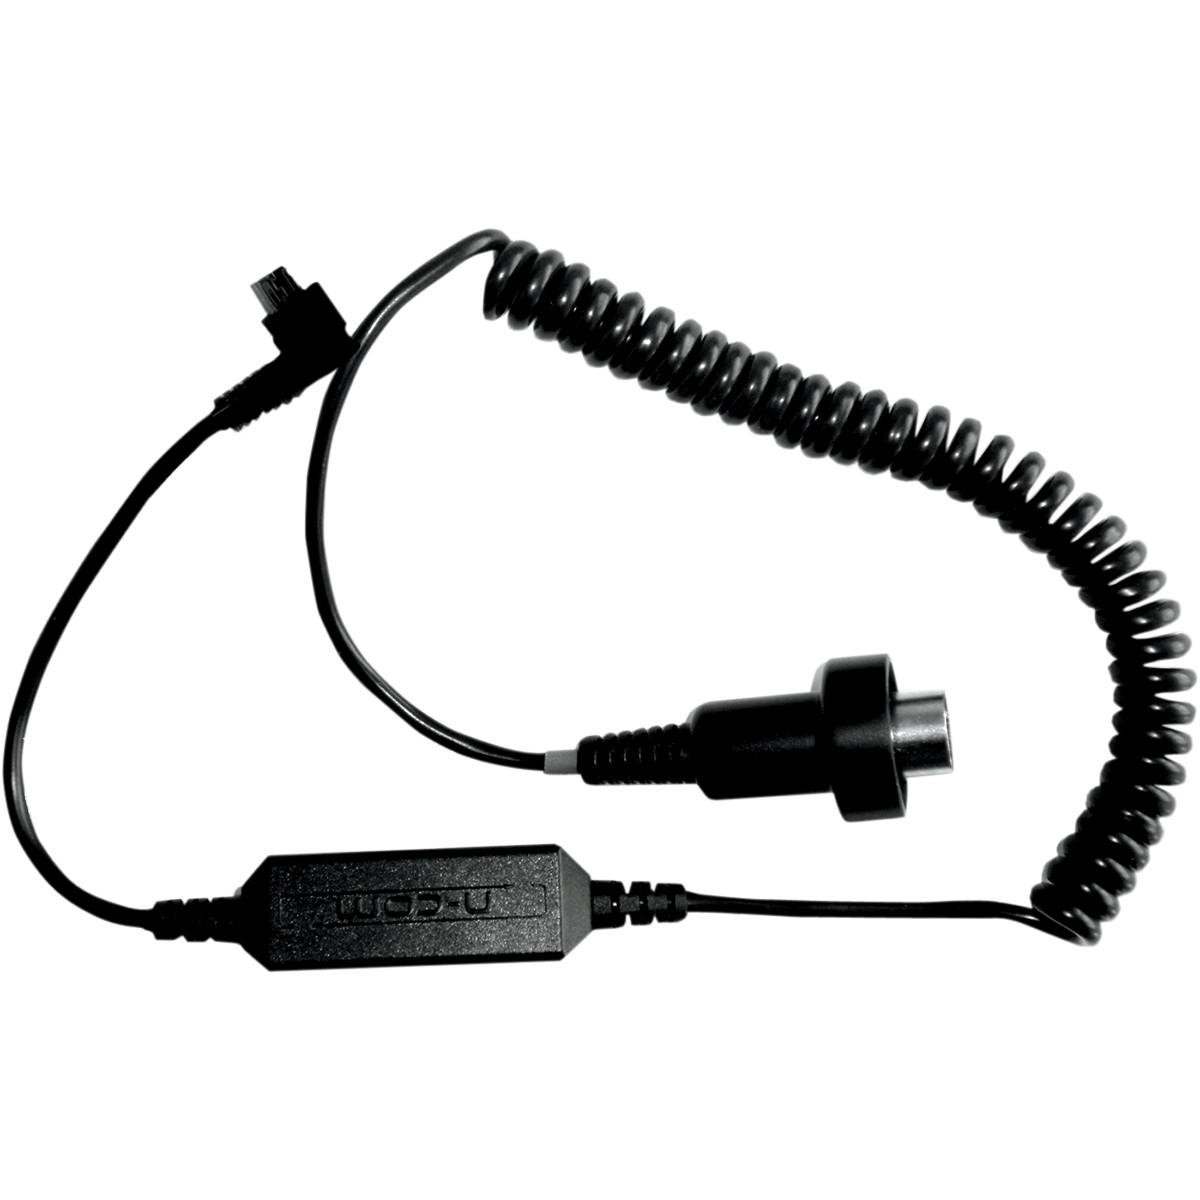 Nolan Replacement Wire for Motorcycle Communication System - Honda Goldwing SPCOM00000029